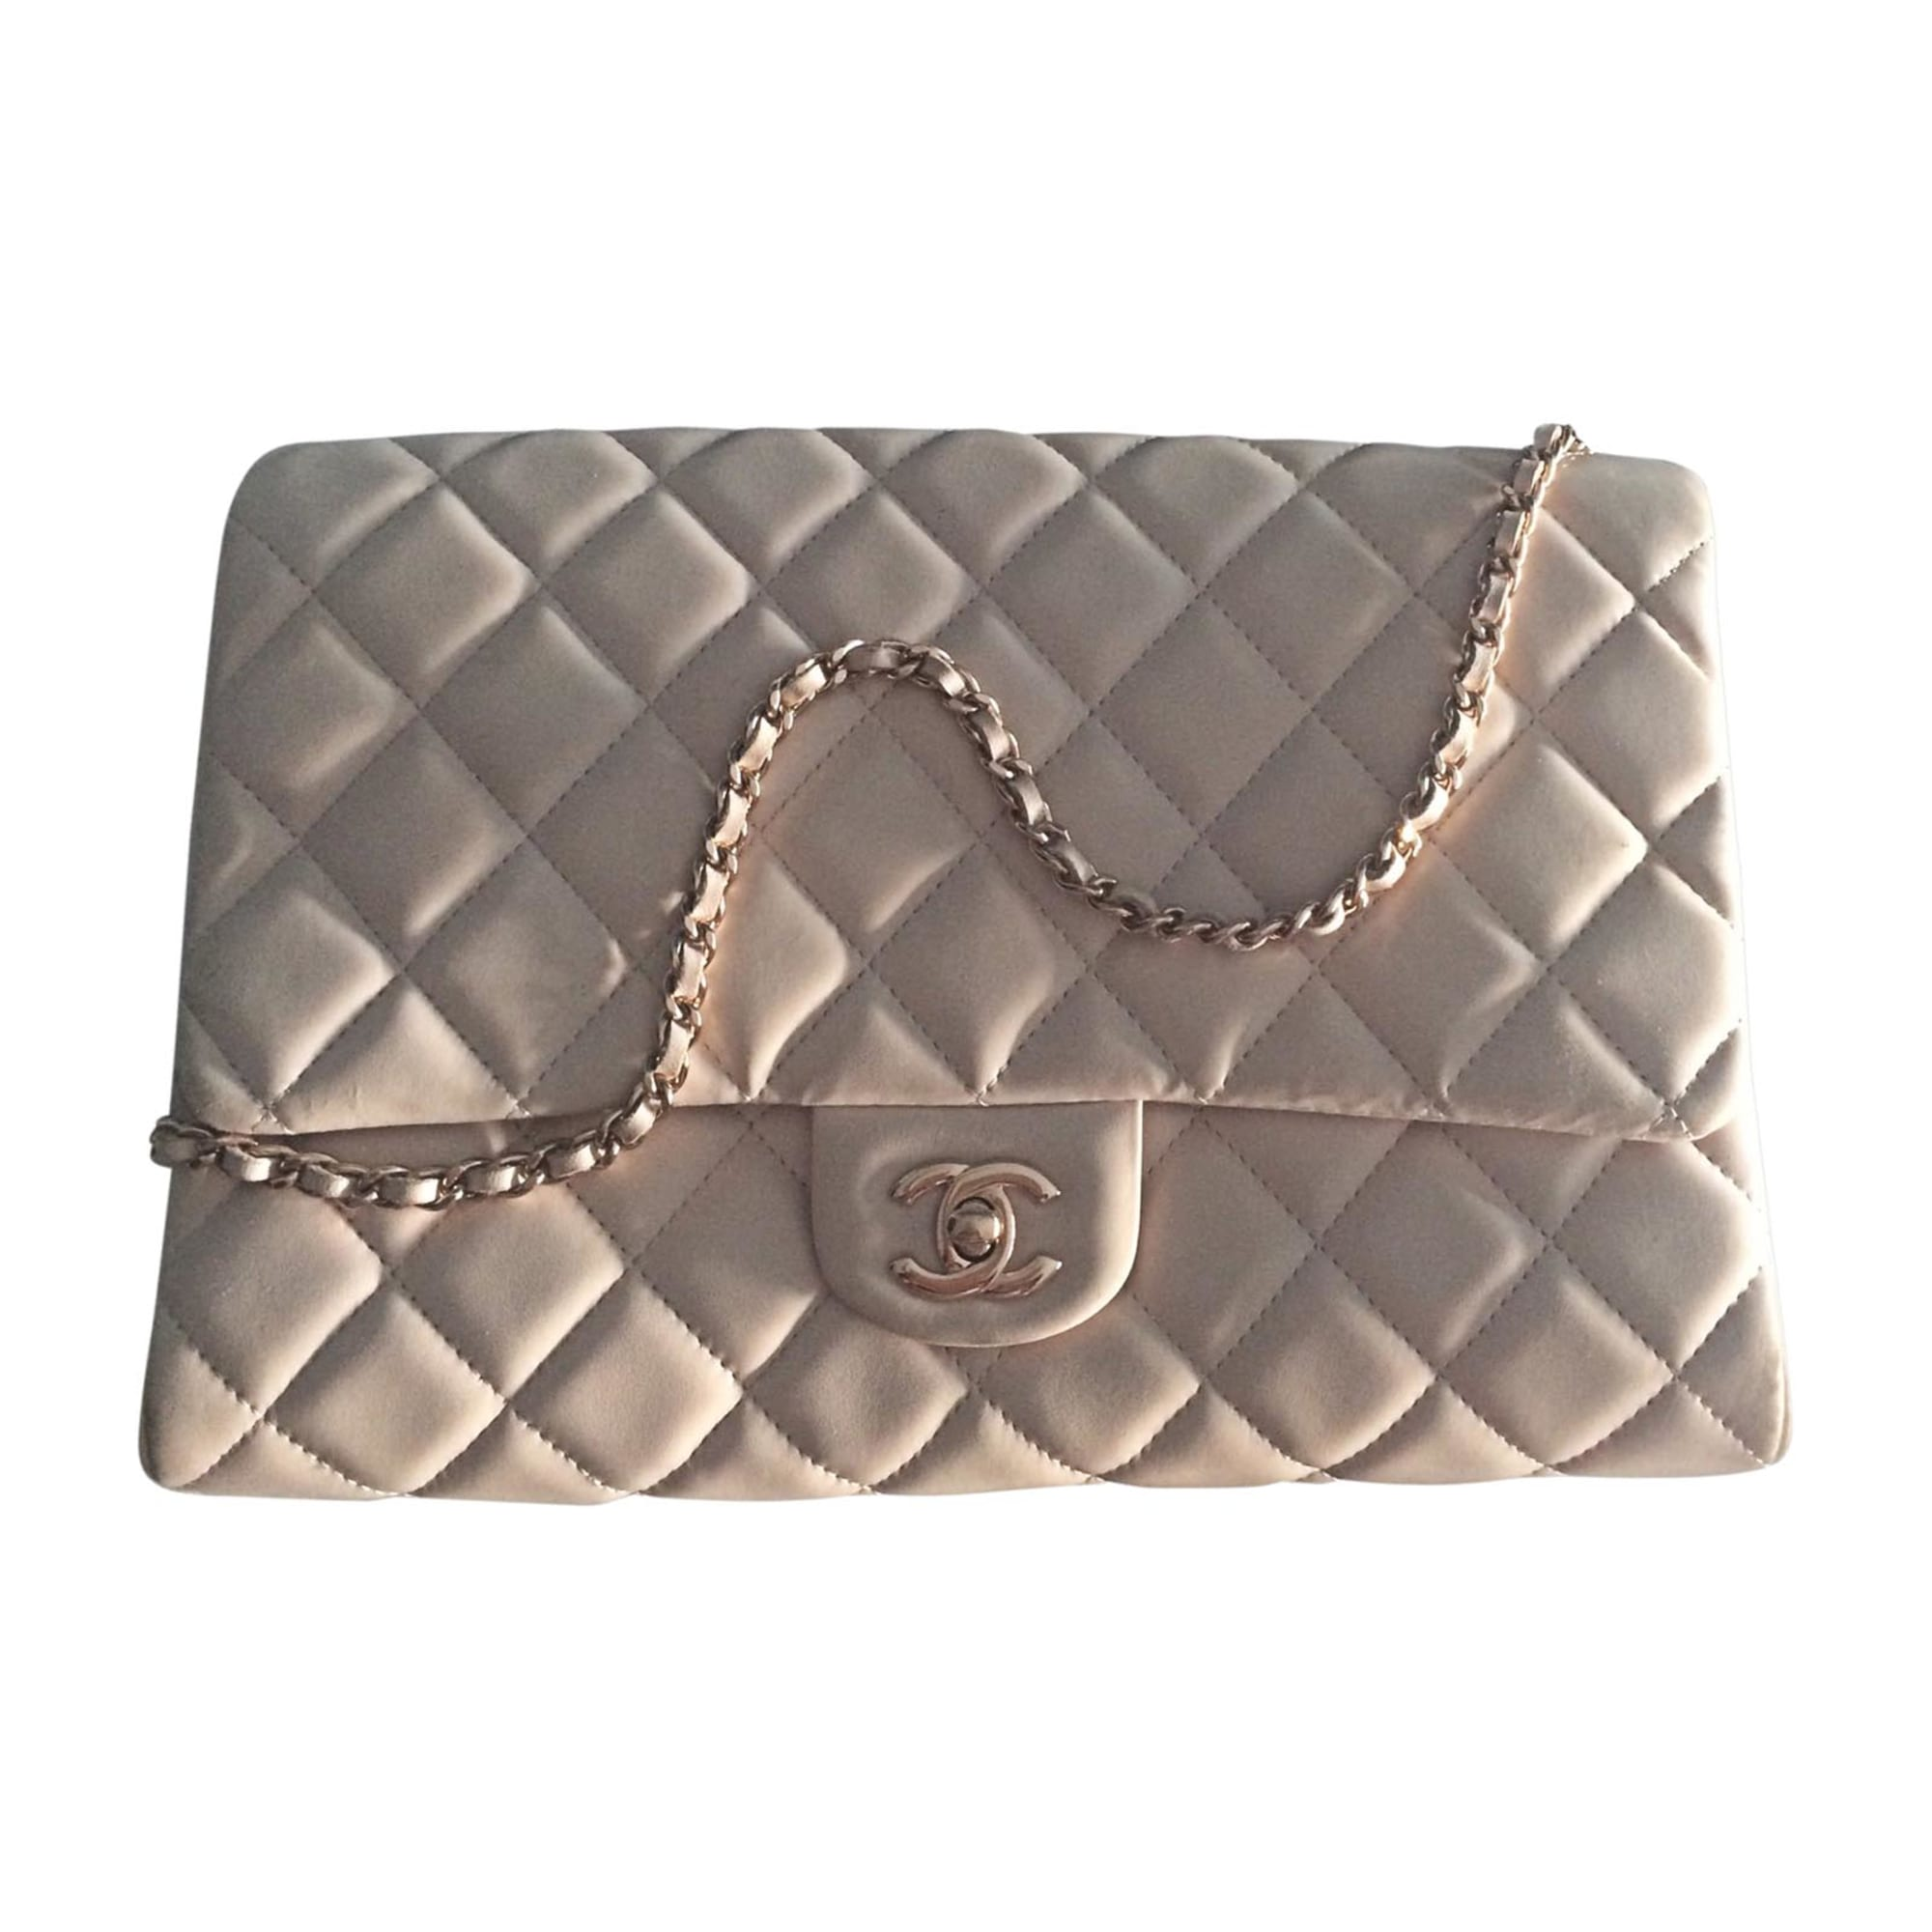 Leather Clutch CHANEL Pink, fuchsia, light pink